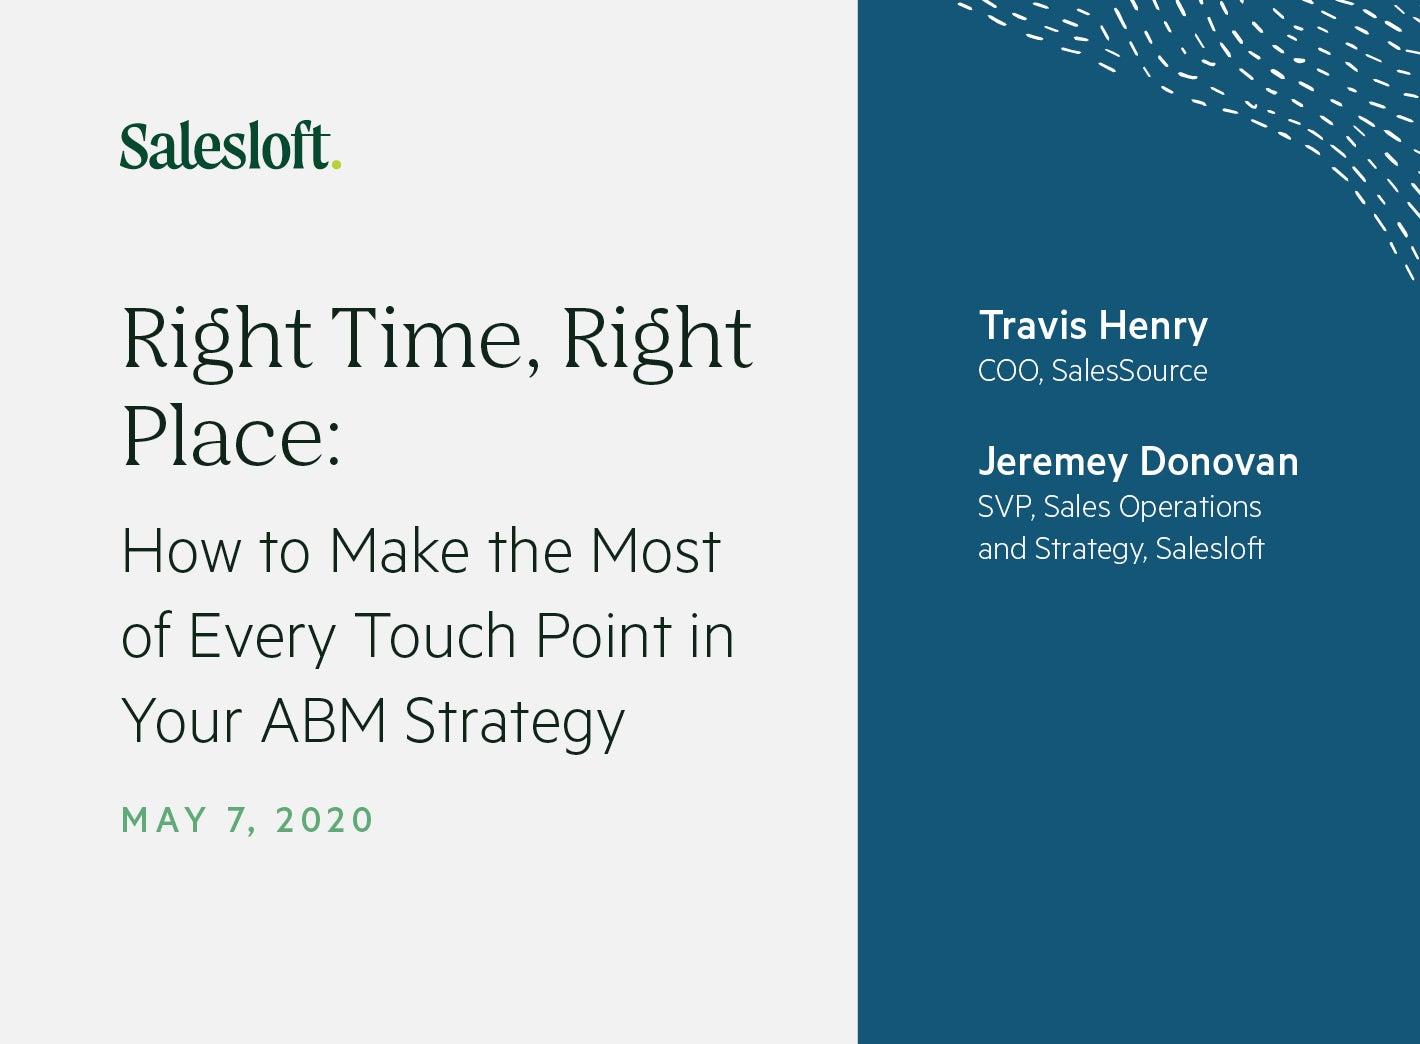 Right Time, Right Place: How to Make the Most of Every Touch Point in Your ABM Strategy